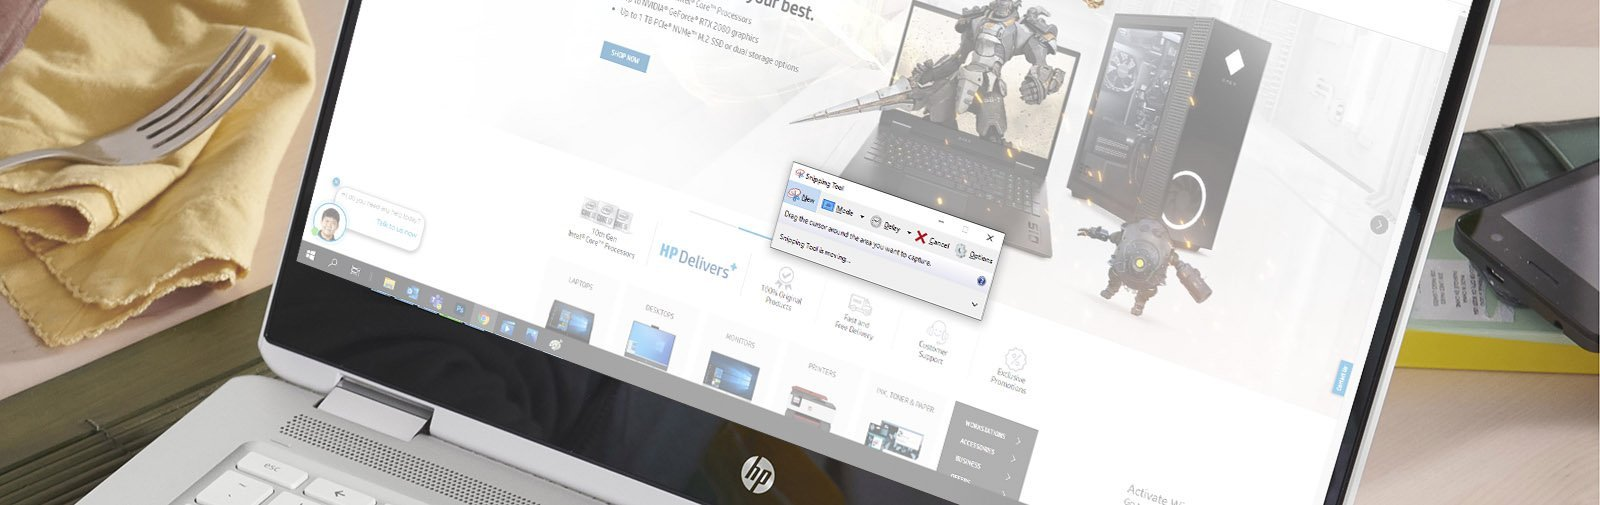 How Do I Print Screen on My PC?